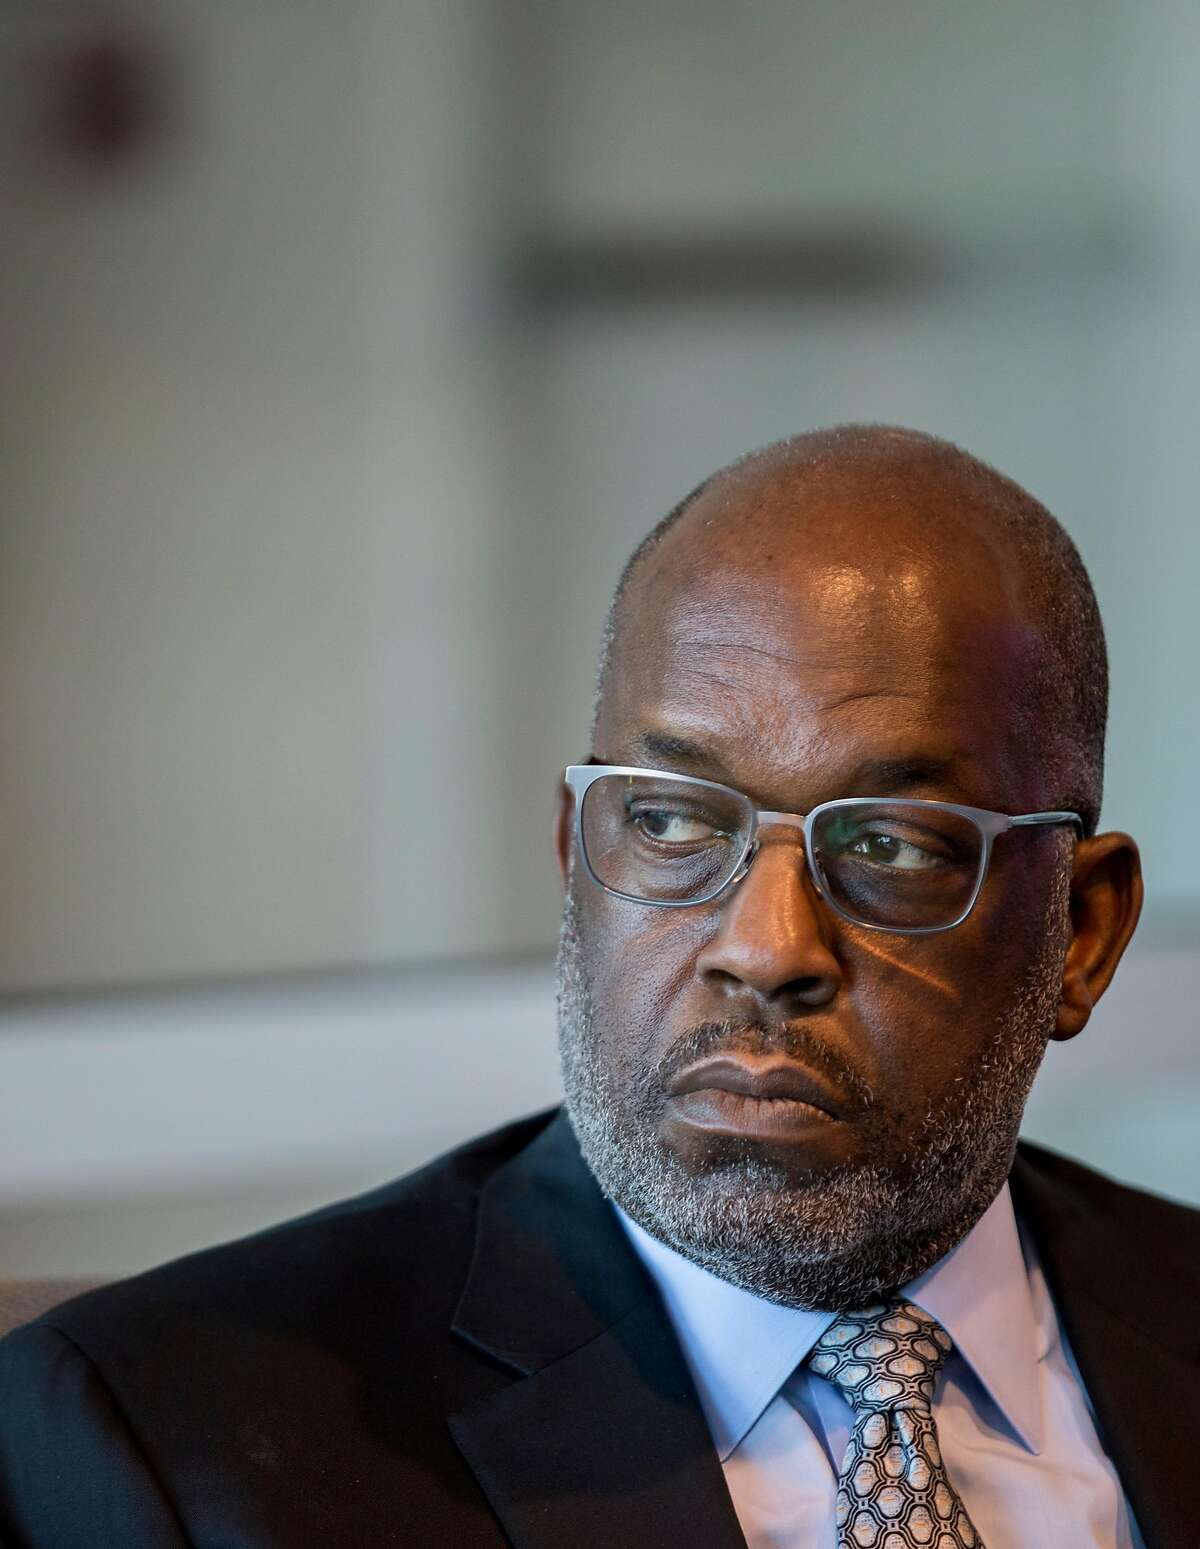 Kaiser Permanente CEO Bernard Tyson speaks to reporters before appearing at Commonwealth Club event to discuss homelessness at the Commonwealth Club in San Francisco, Calif. Wednesday, August 14, 2019.